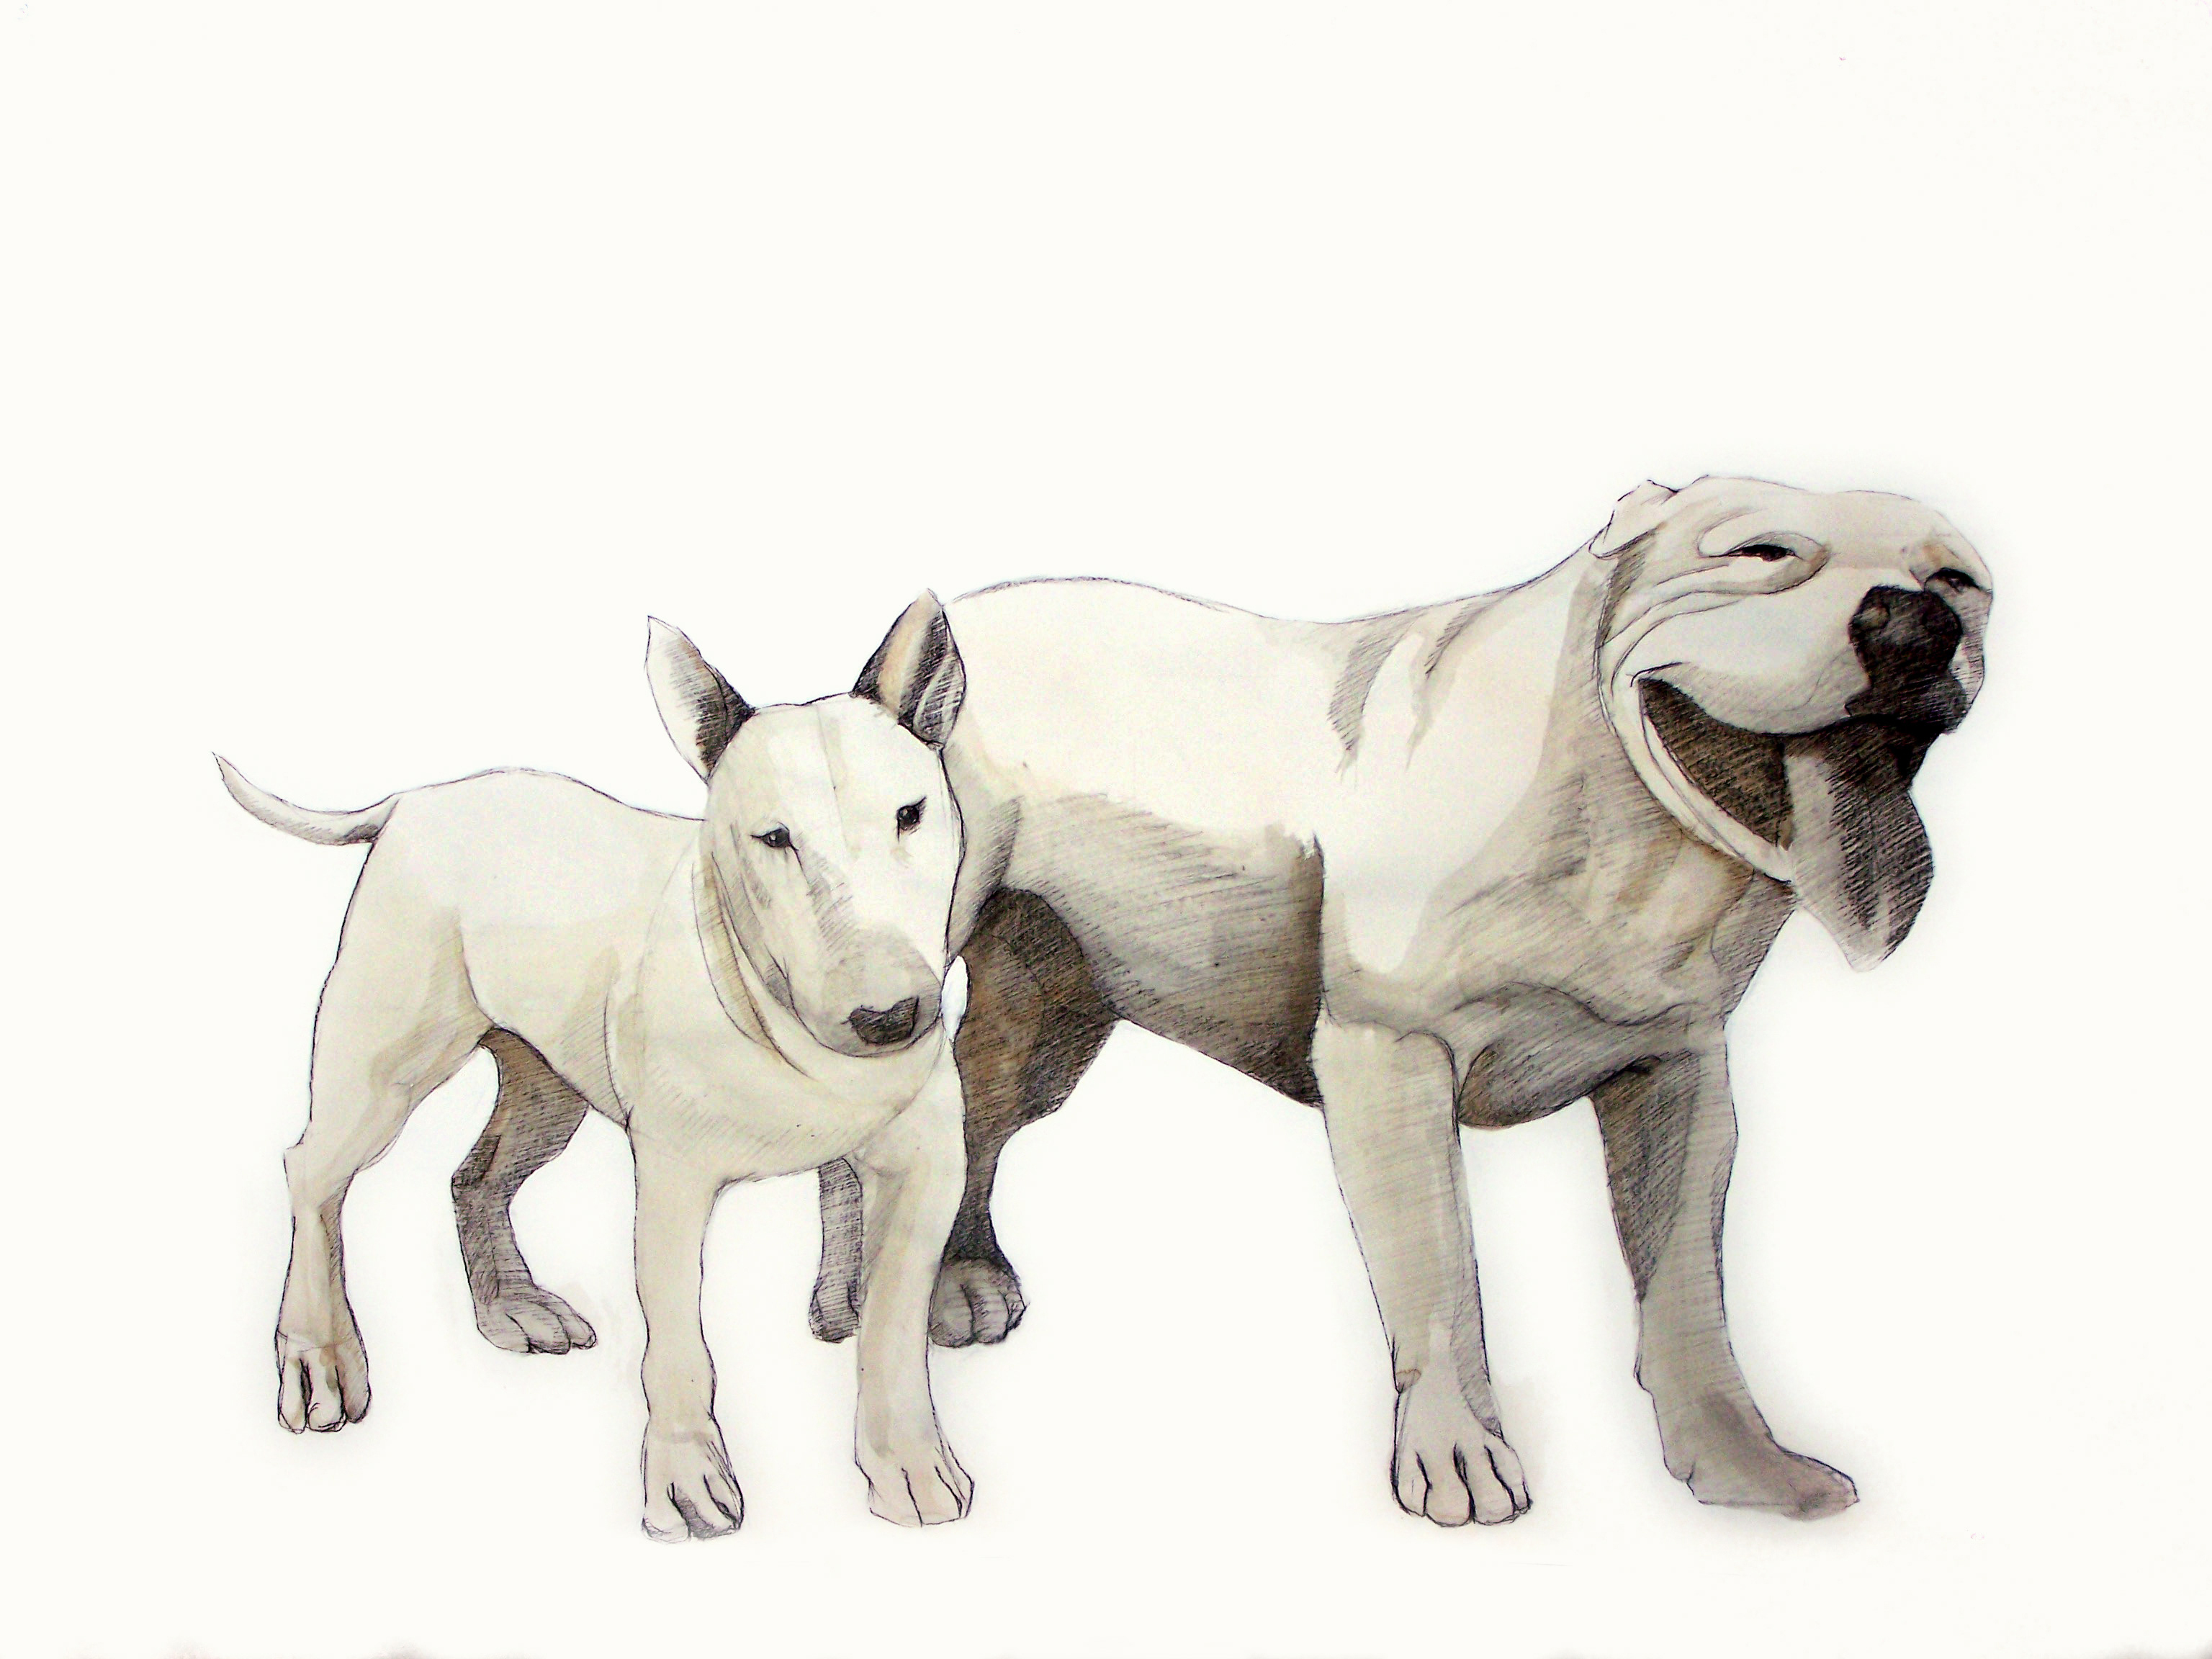 "Dog Days, 36"" x 580"", charcoal, gesso & blood on paper"